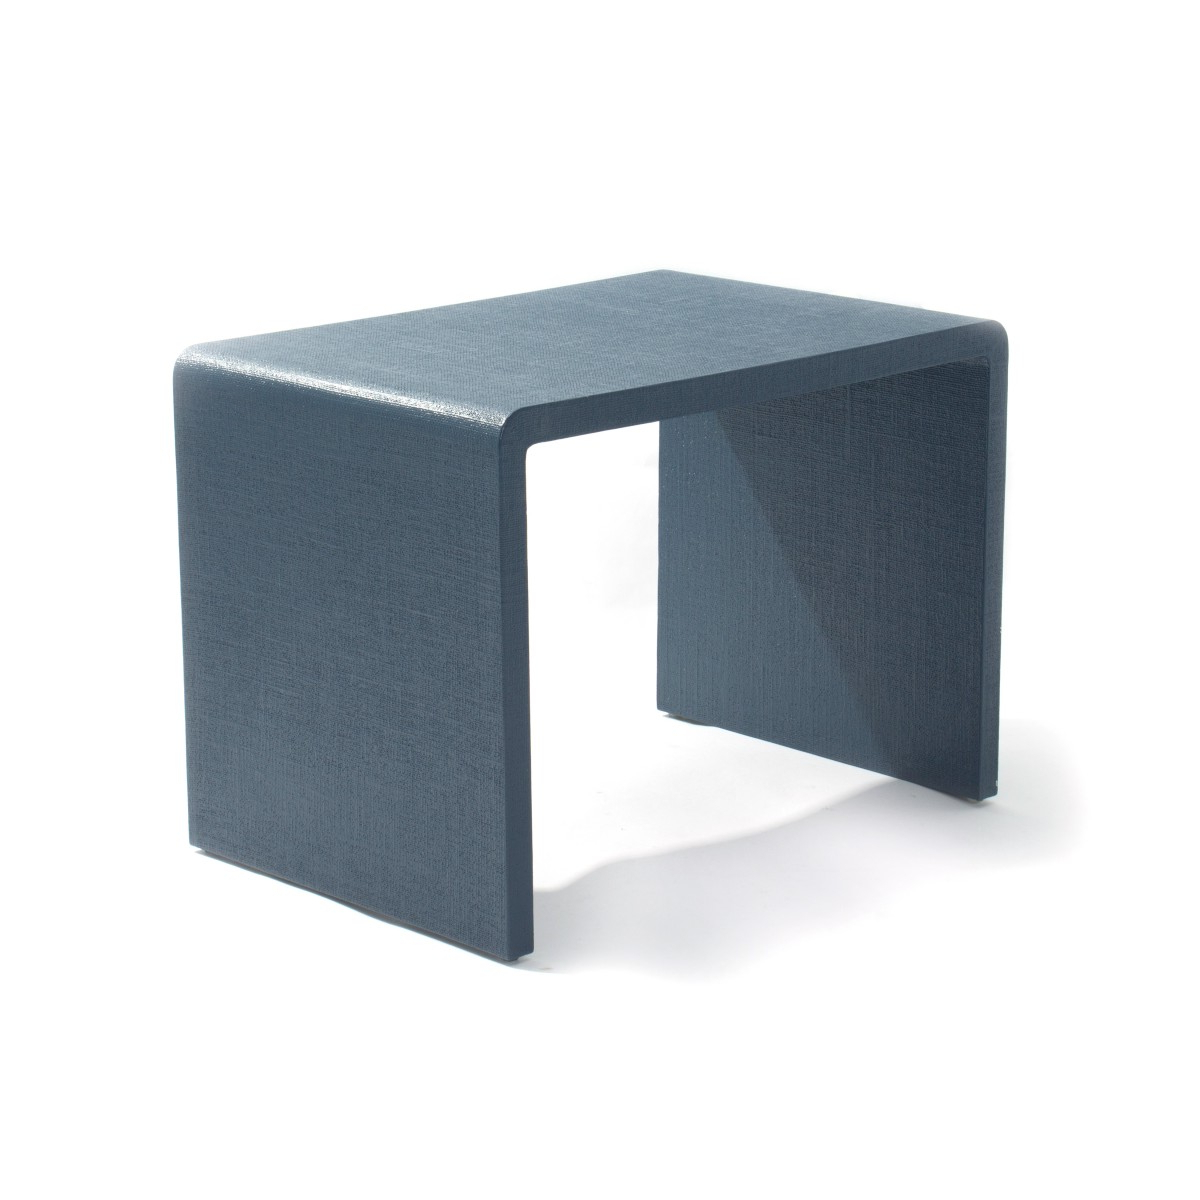 Pair Of John Lyle Blue Lacquered Linen Waterfall Side Tables Decor Throughout Most Recent Square Waterfall Coffee Tables (Gallery 12 of 20)